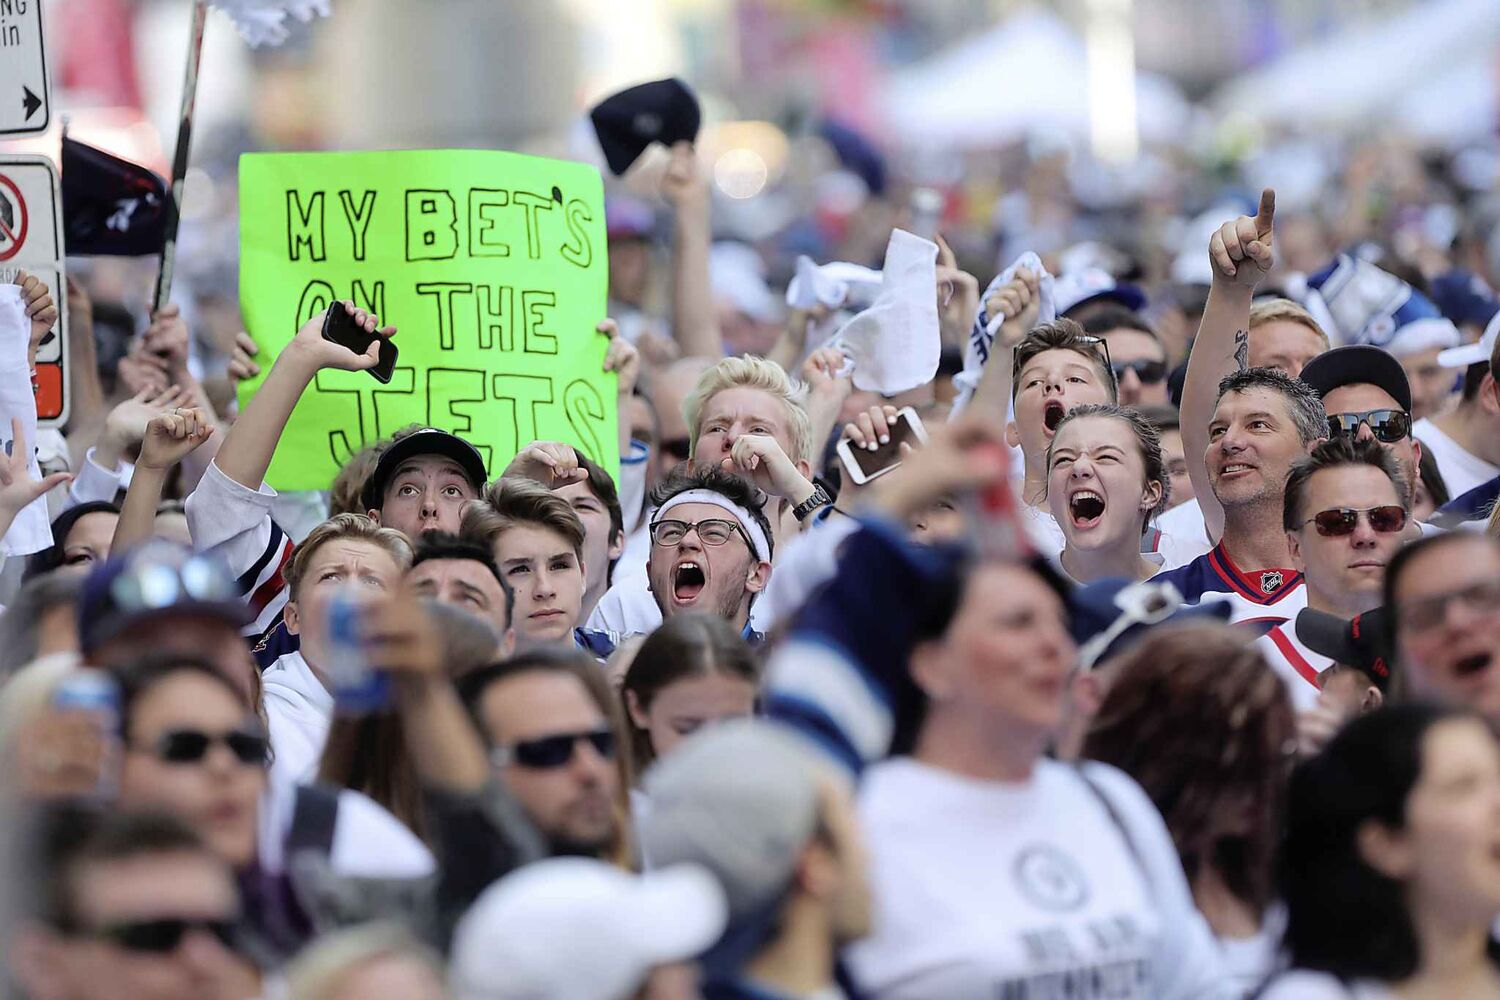 RUTH BONNEVILLE / WINNIPEG FREE PRESS</p><p>Thousands of Winnipeg Jets fans scream at the start of Game 1 of Western Conference final between the Jets and Las Vegas Golden Knights game outside Bell MTS Place druing the Whiteout street party Saturday, May 12, 2018.</p>